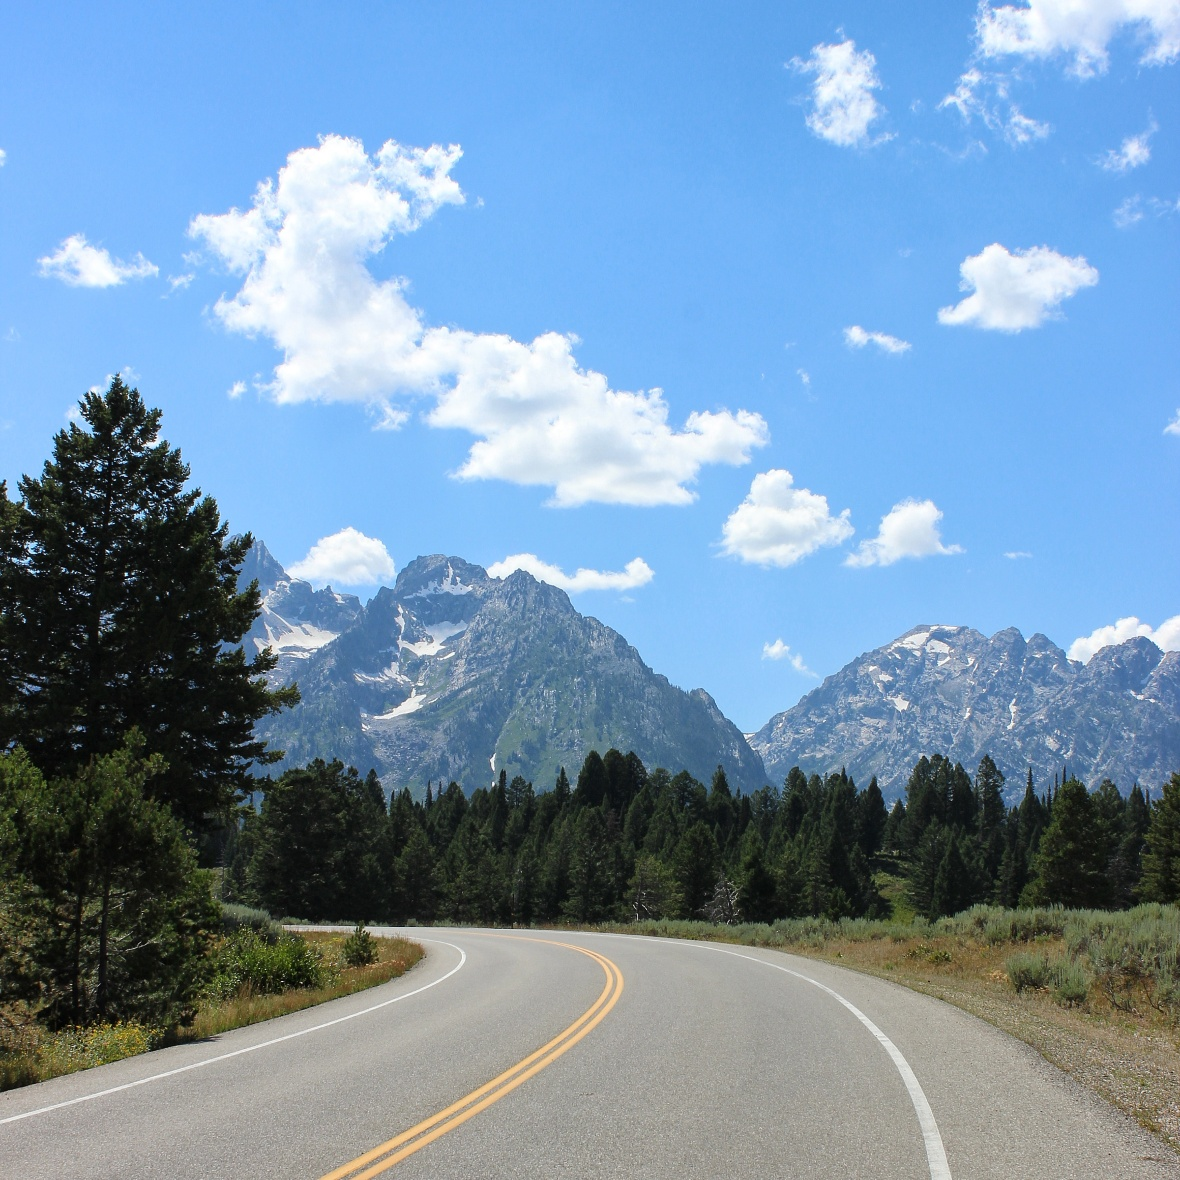 Road Trip through the Grand Teton National Park